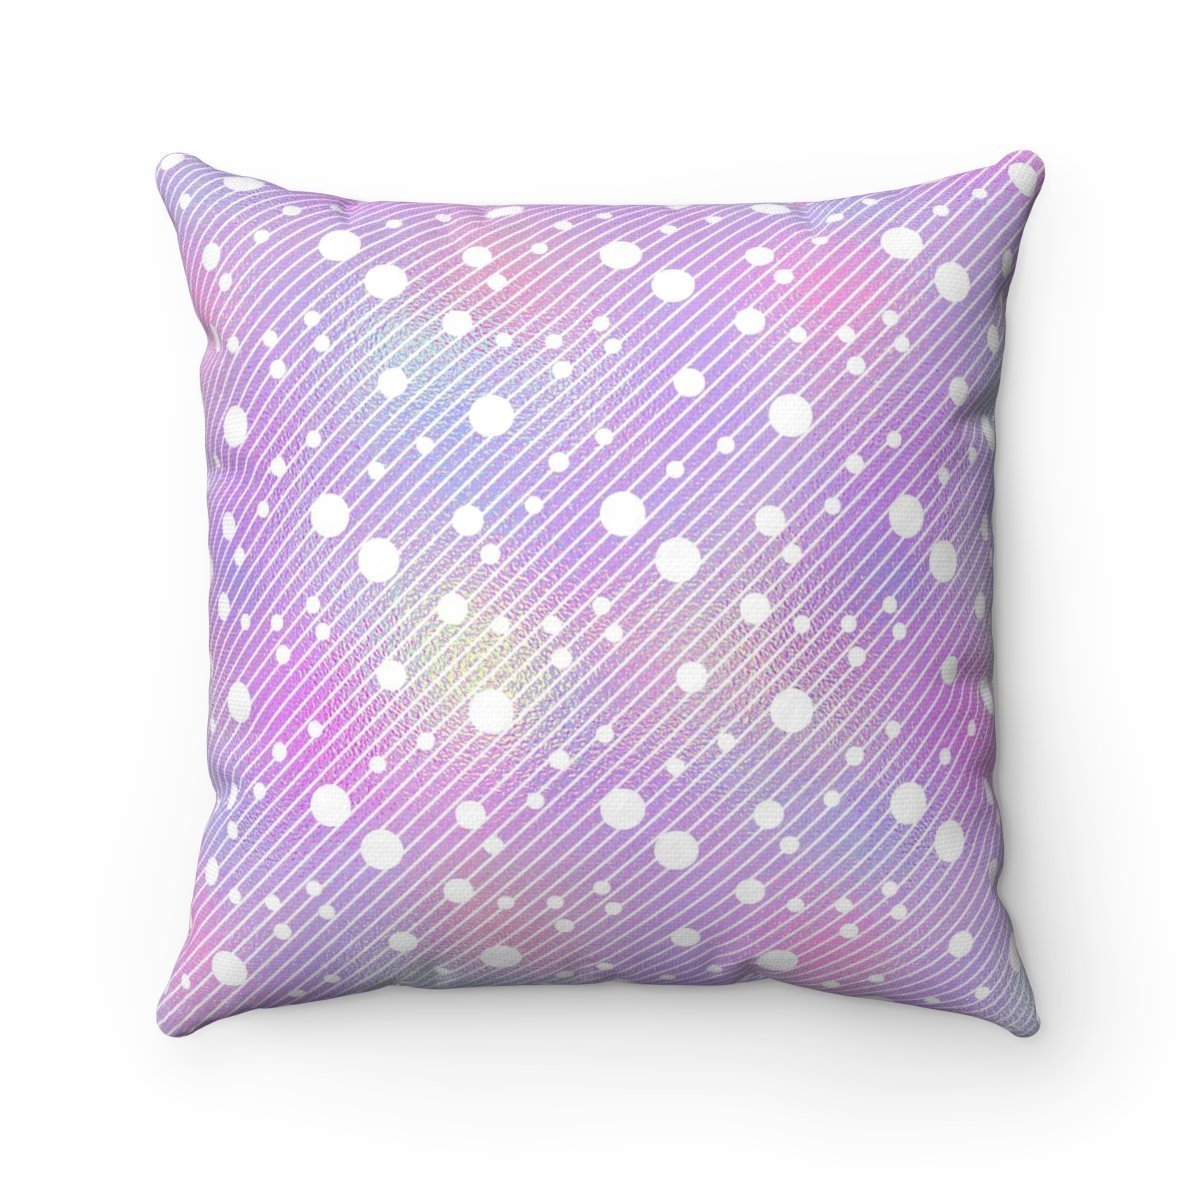 Hologram White dots on striped decorative cushion cover-Home Decor - Decorative Accents - Pillows & Throws - Decorative Pillows-Maison d'Elite-14x14-Très Elite